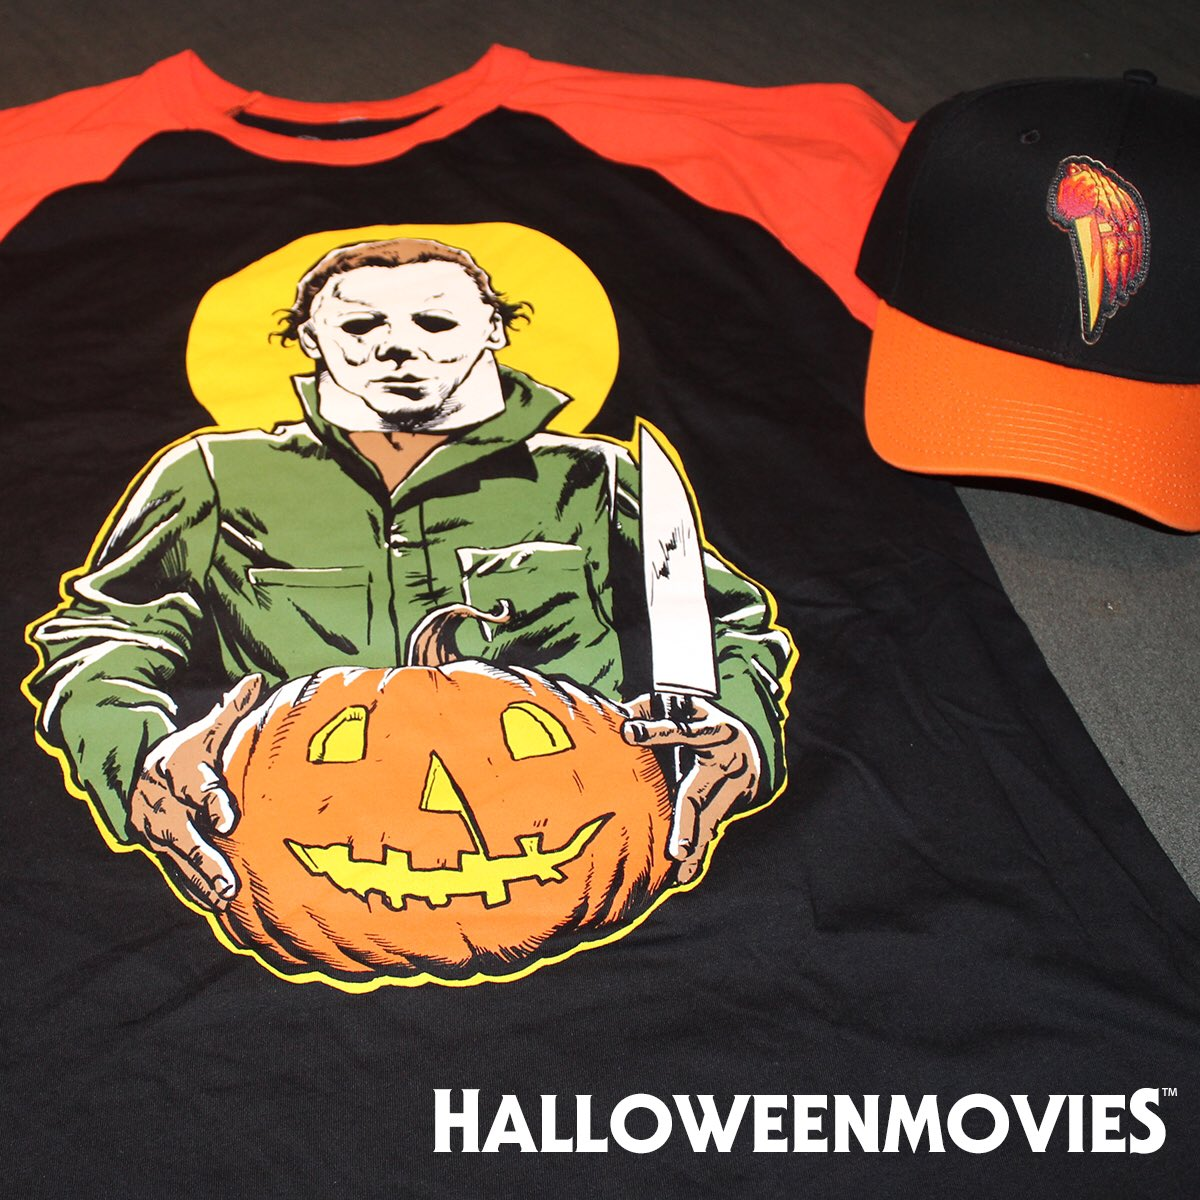 #GIVEAWAY Follow us & RETWEET for a chance to #WIN mystery #Halloween  swag from Trancas' vault! We'll select 2 winners each week (this one ends 11/12/19). Open to US residents only. 🎃🔪 #MichaelMyers